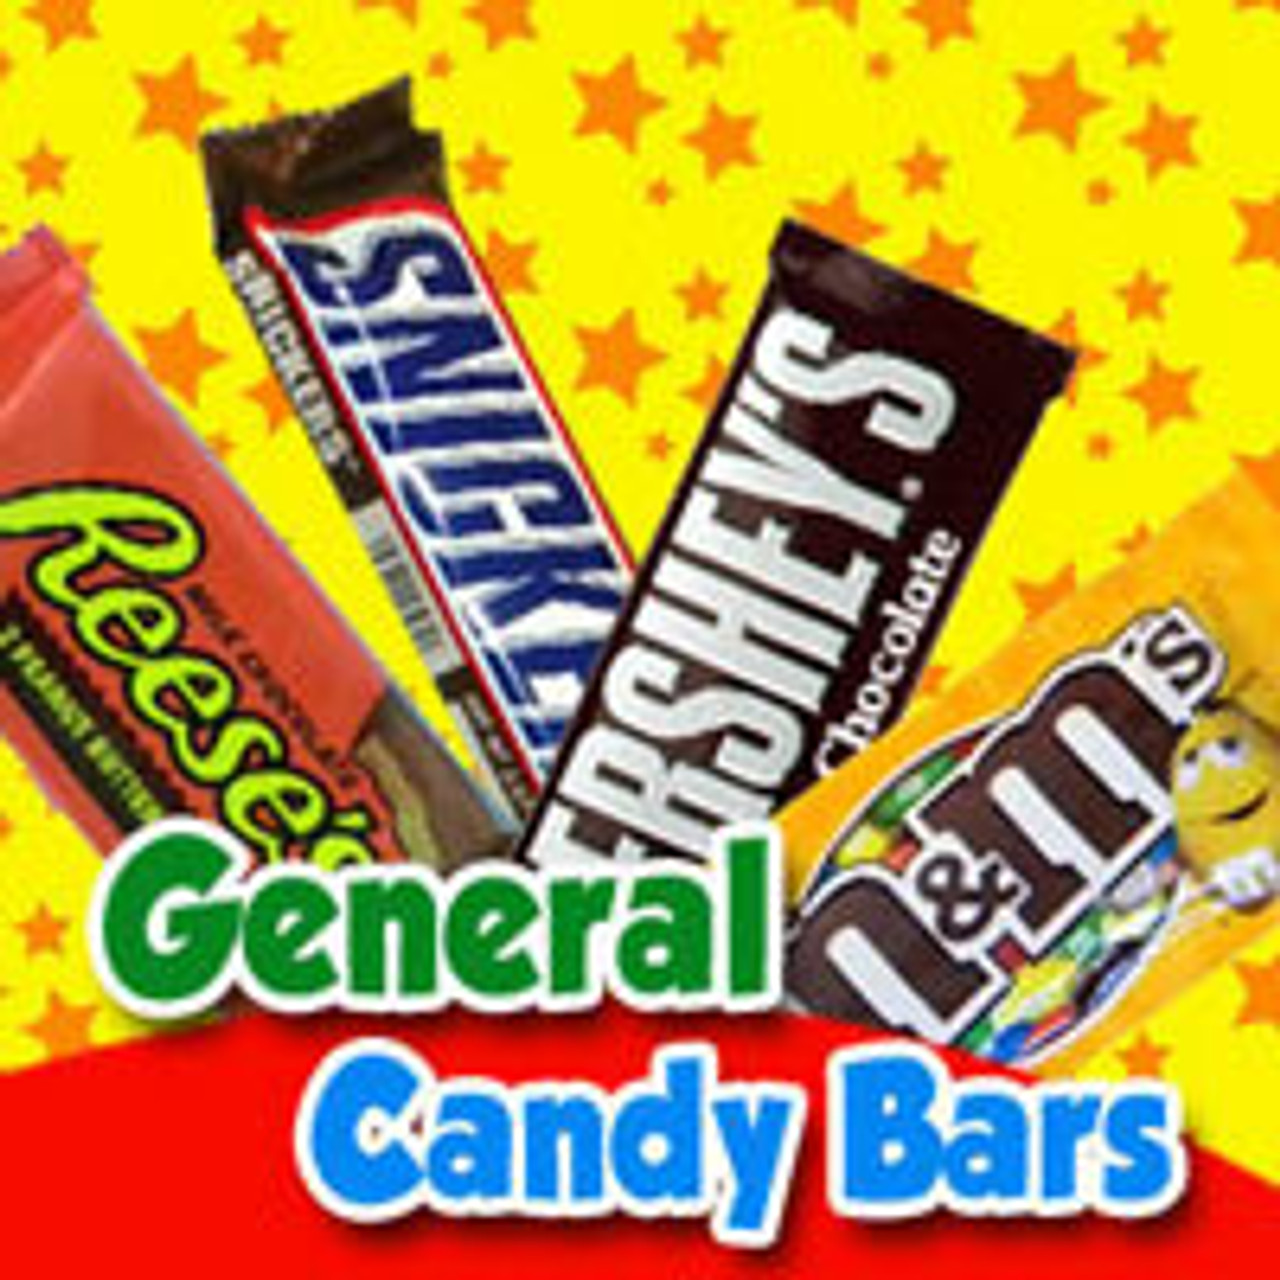 General Candy Bars